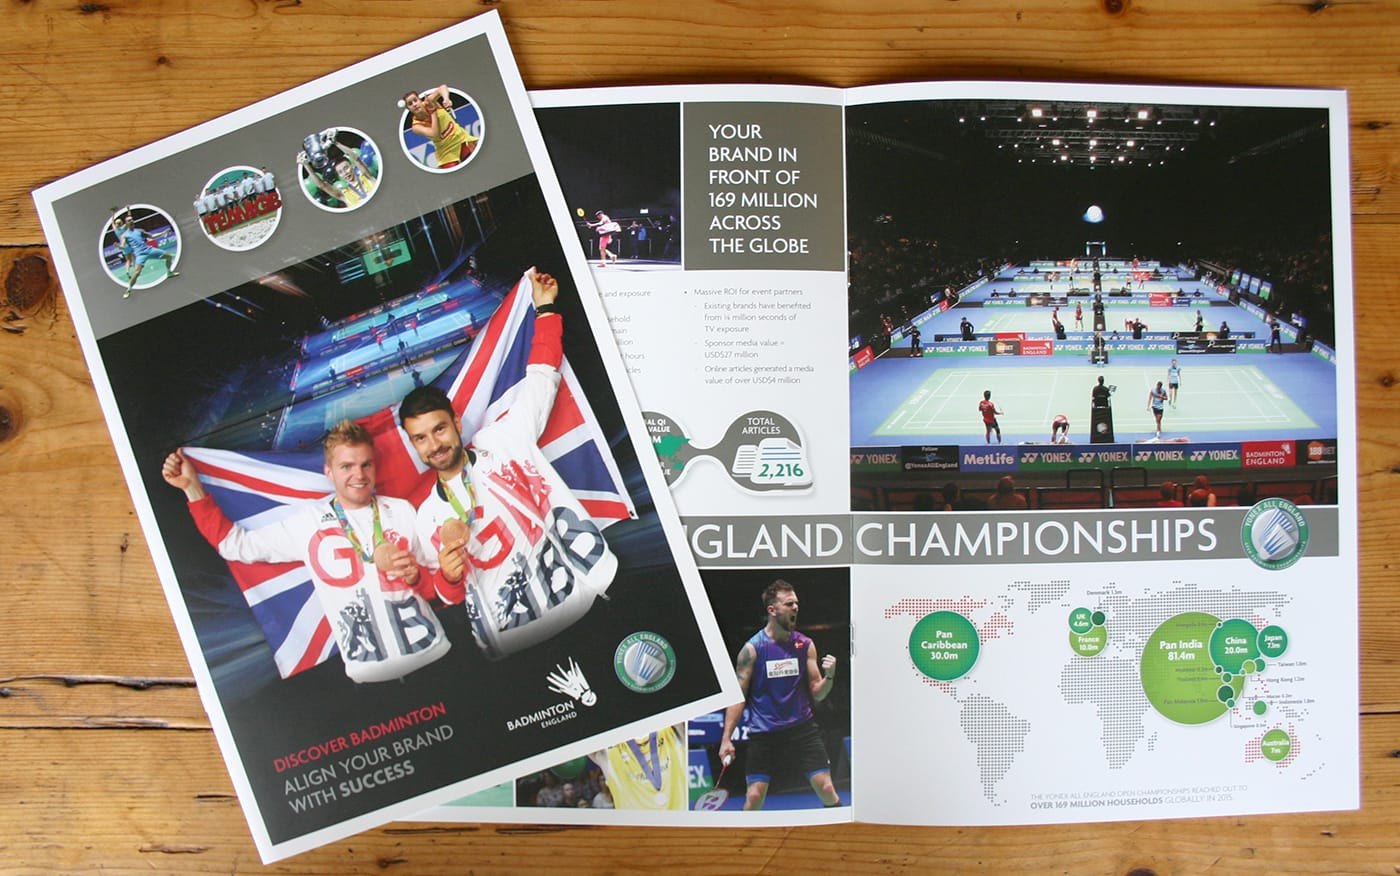 Creation of a brochure to raise awareness of advertising and corporate sponsorship opportunities for one of the worlds most prestigious sporting events.